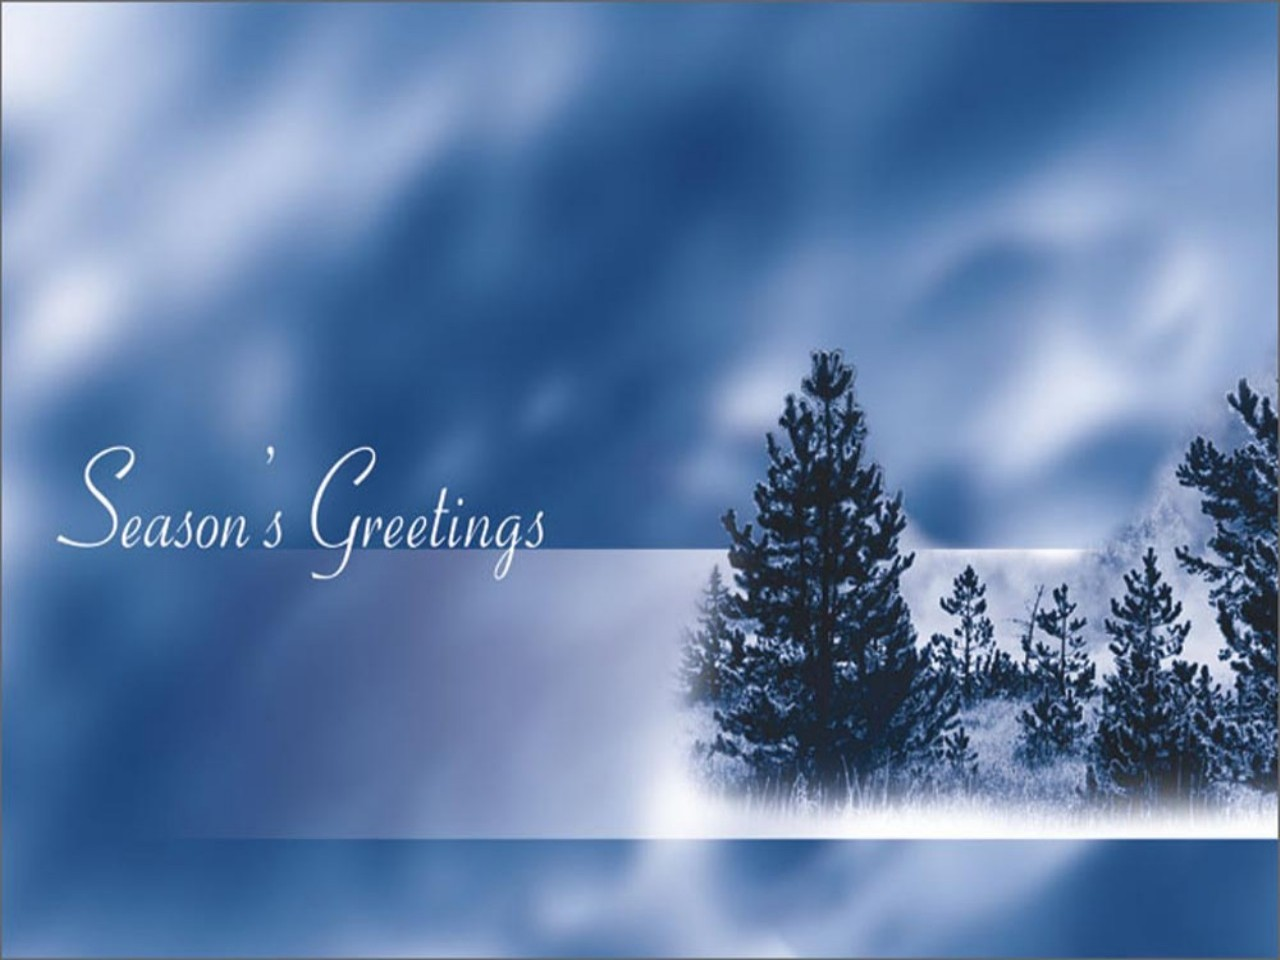 Seasons greetings wallpapers high quality download free seasons greetings photo download seasons greetings photo free m4hsunfo